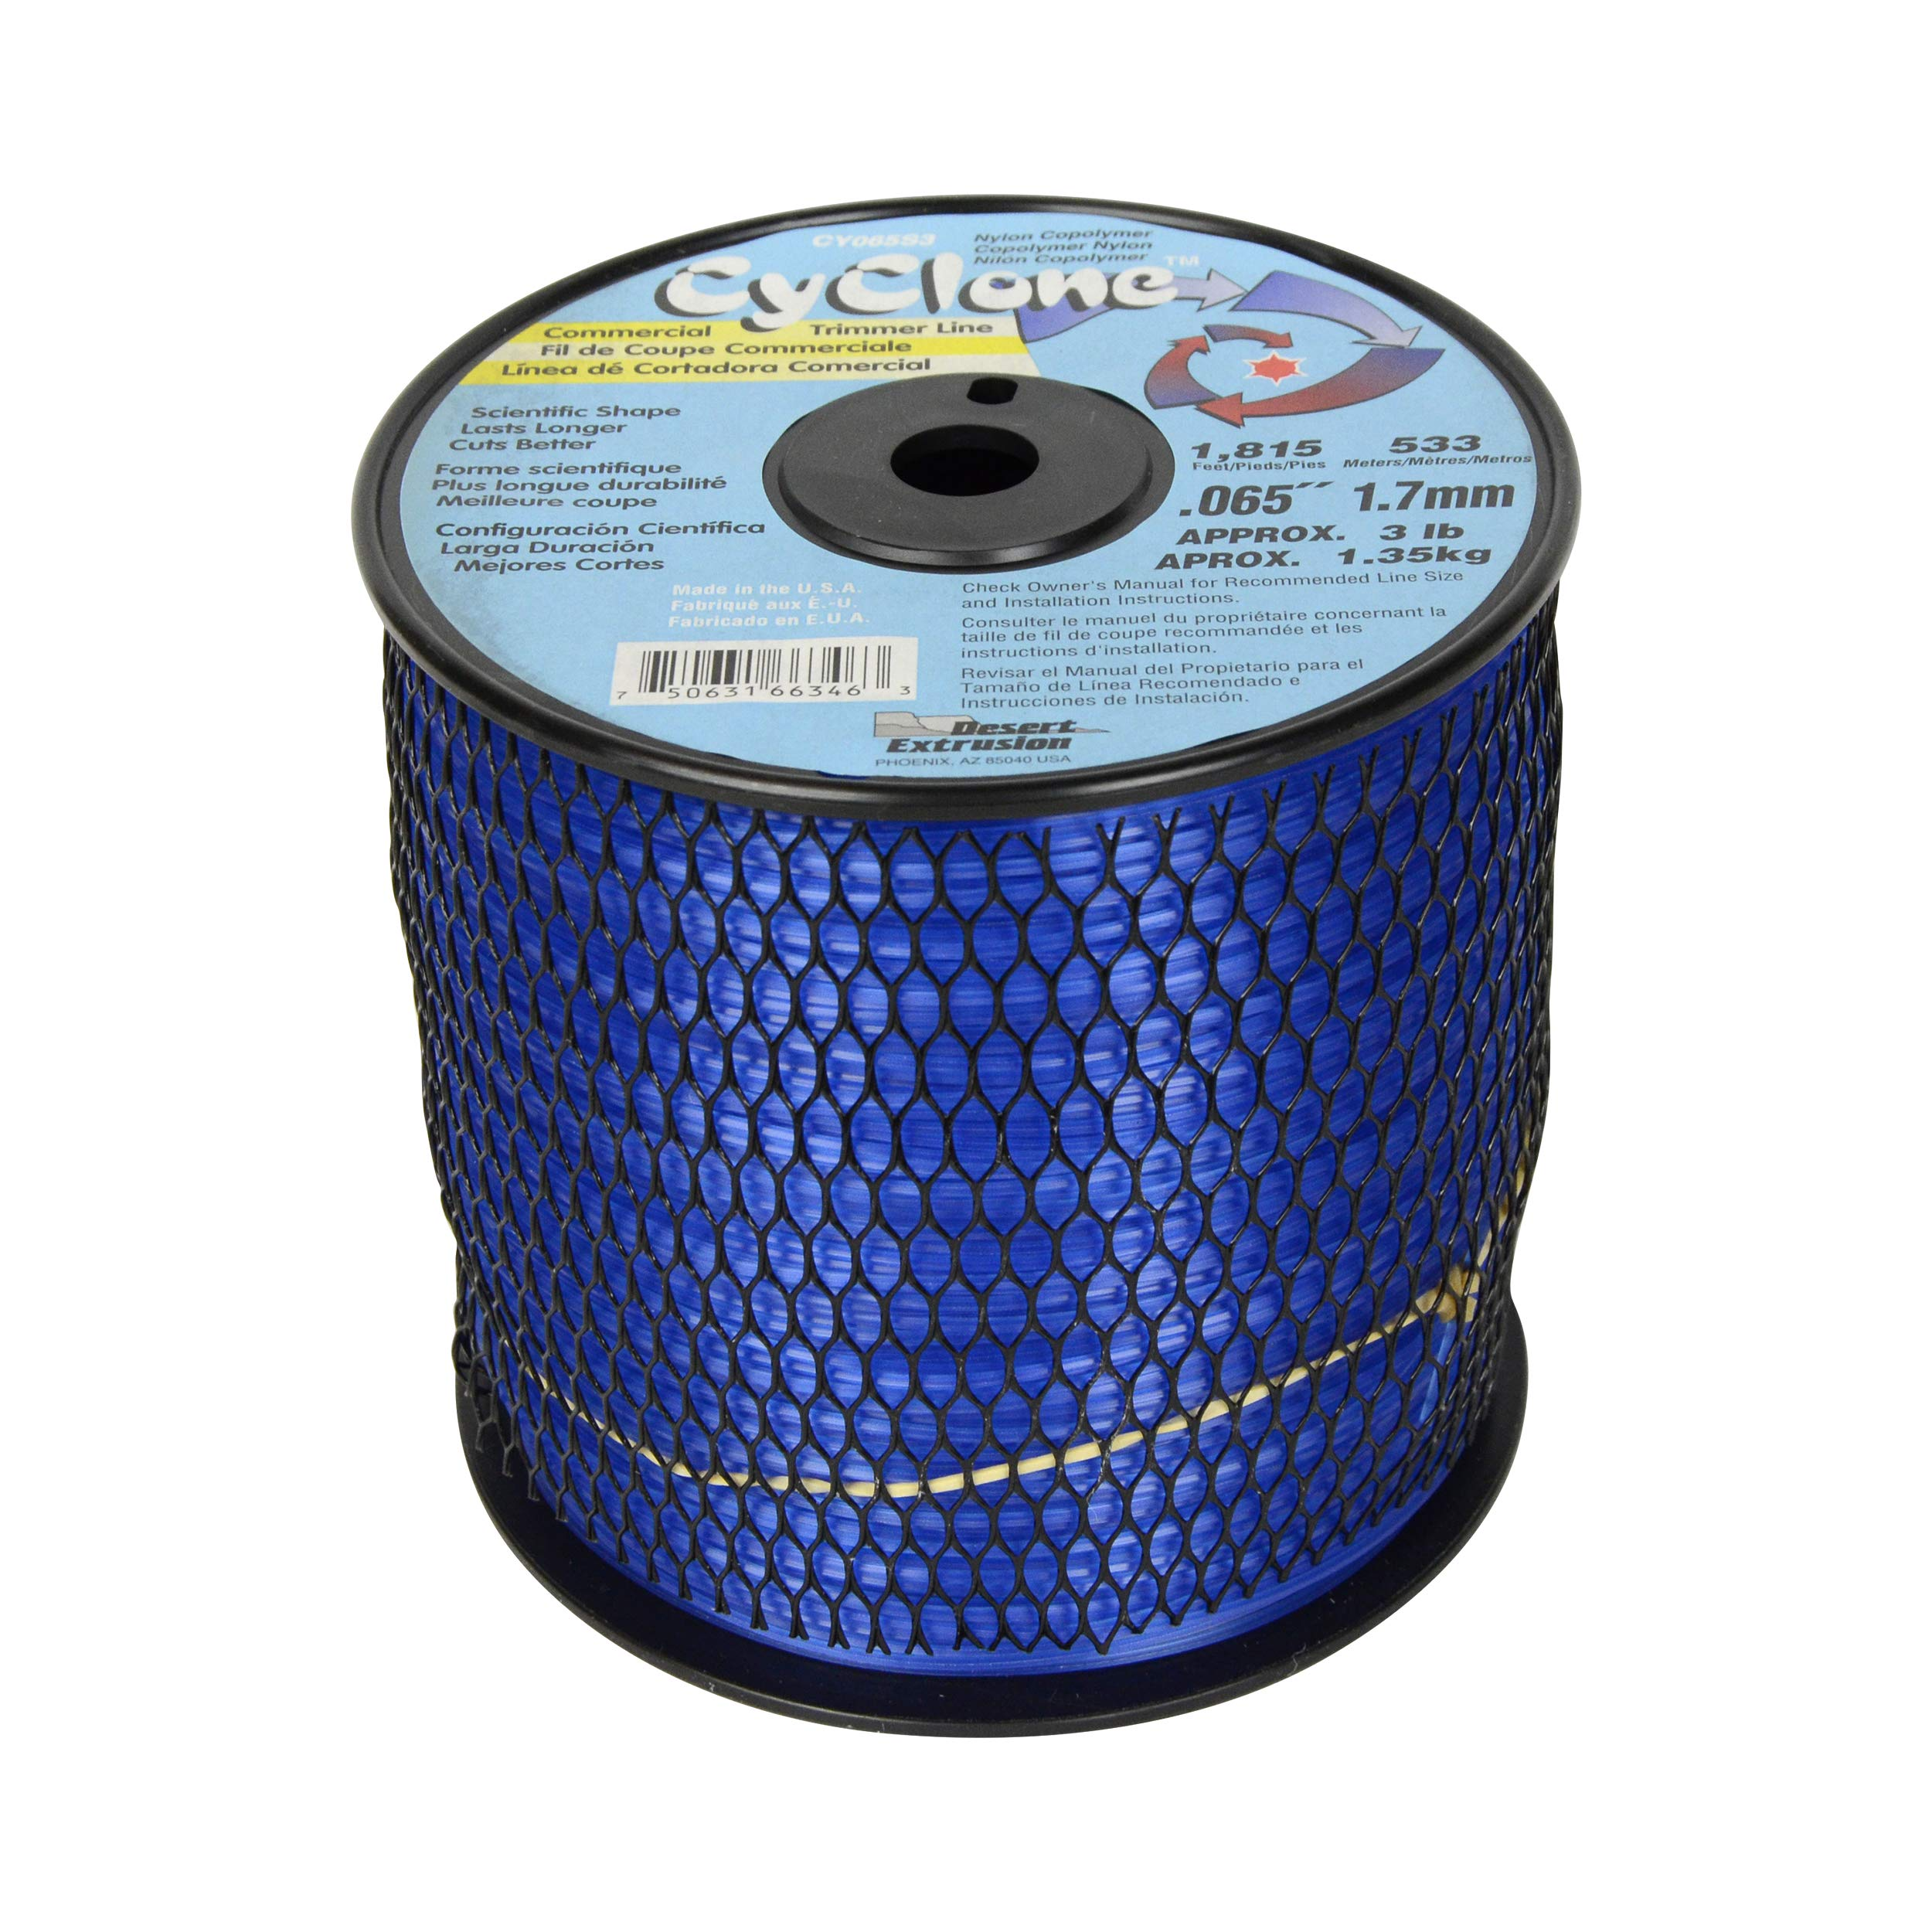 Cyclone .065-Inch 3-Pound Spool Commercial Grade 6-Blade Grass Trimmer Line, Blue CY065S3-2 by Cyclone